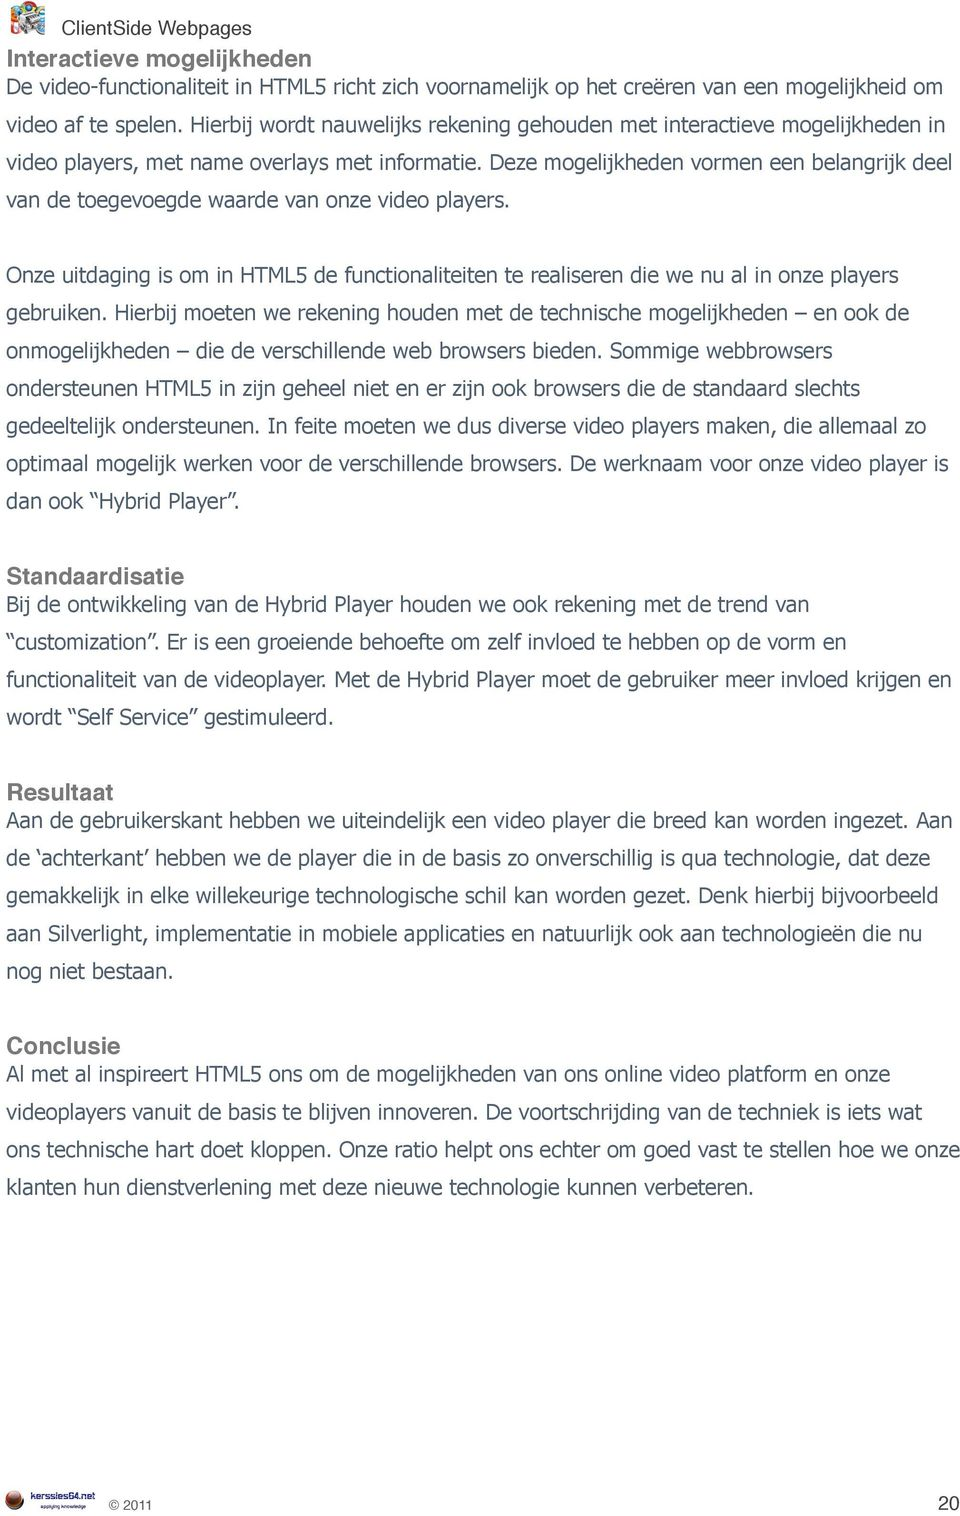 Deze mogelijkheden vormen een belangrijk deel van de toegevoegde waarde van onze video players. Onze uitdaging is om in HTML5 de functionaliteiten te realiseren die we nu al in onze players gebruiken.